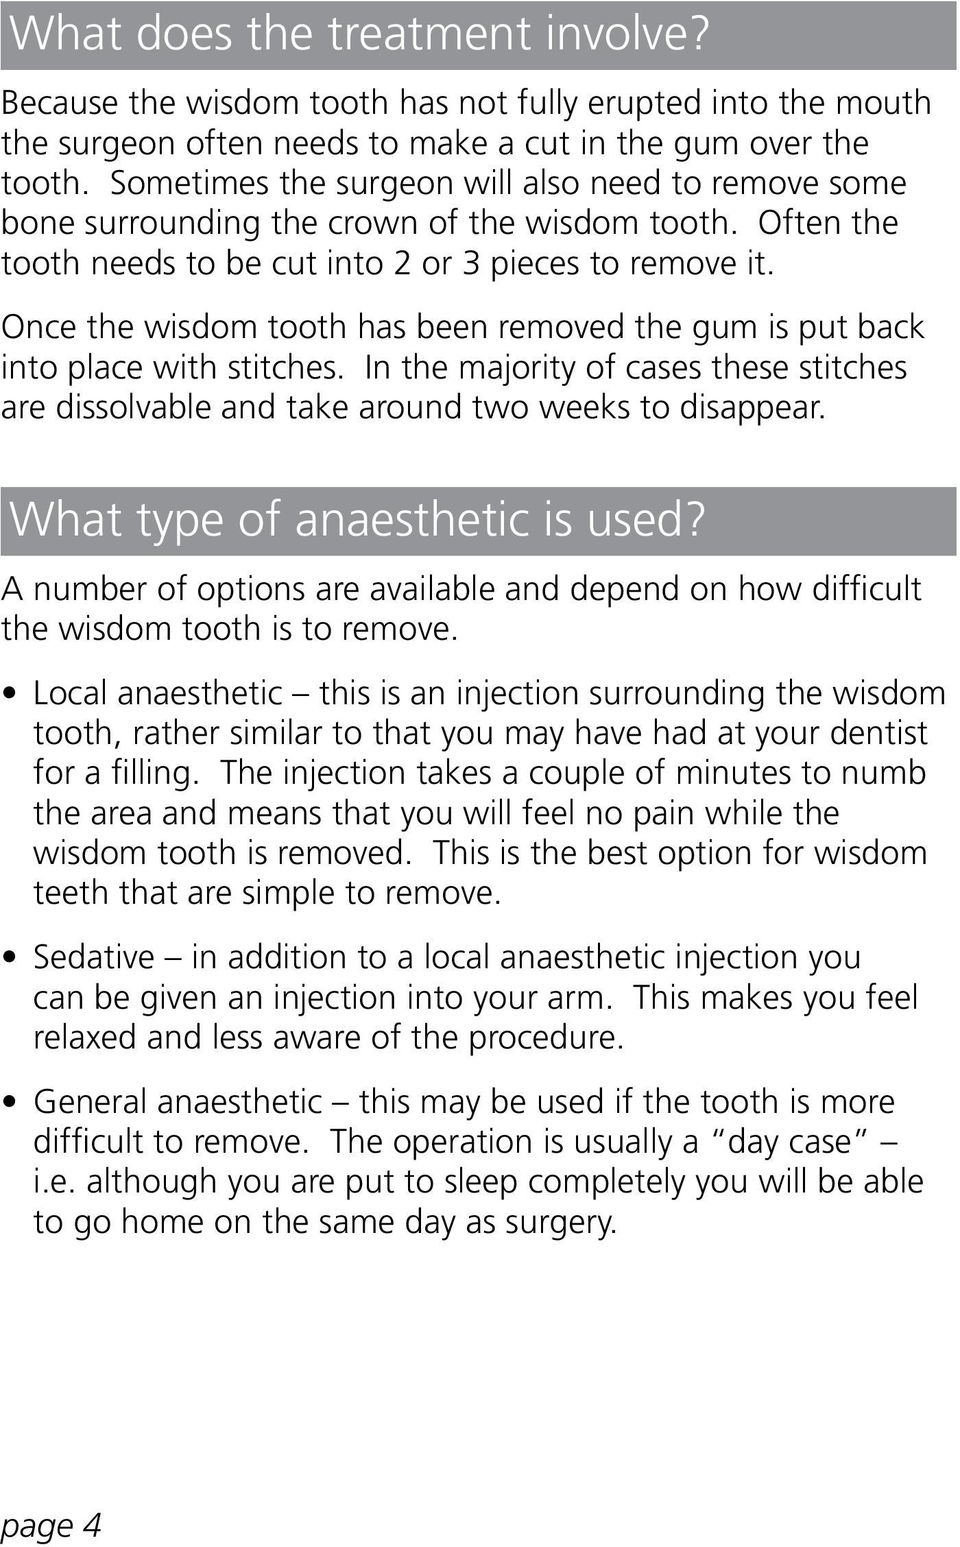 Once the wisdom tooth has been removed the gum is put back into place with stitches. In the majority of cases these stitches are dissolvable and take around two weeks to disappear.